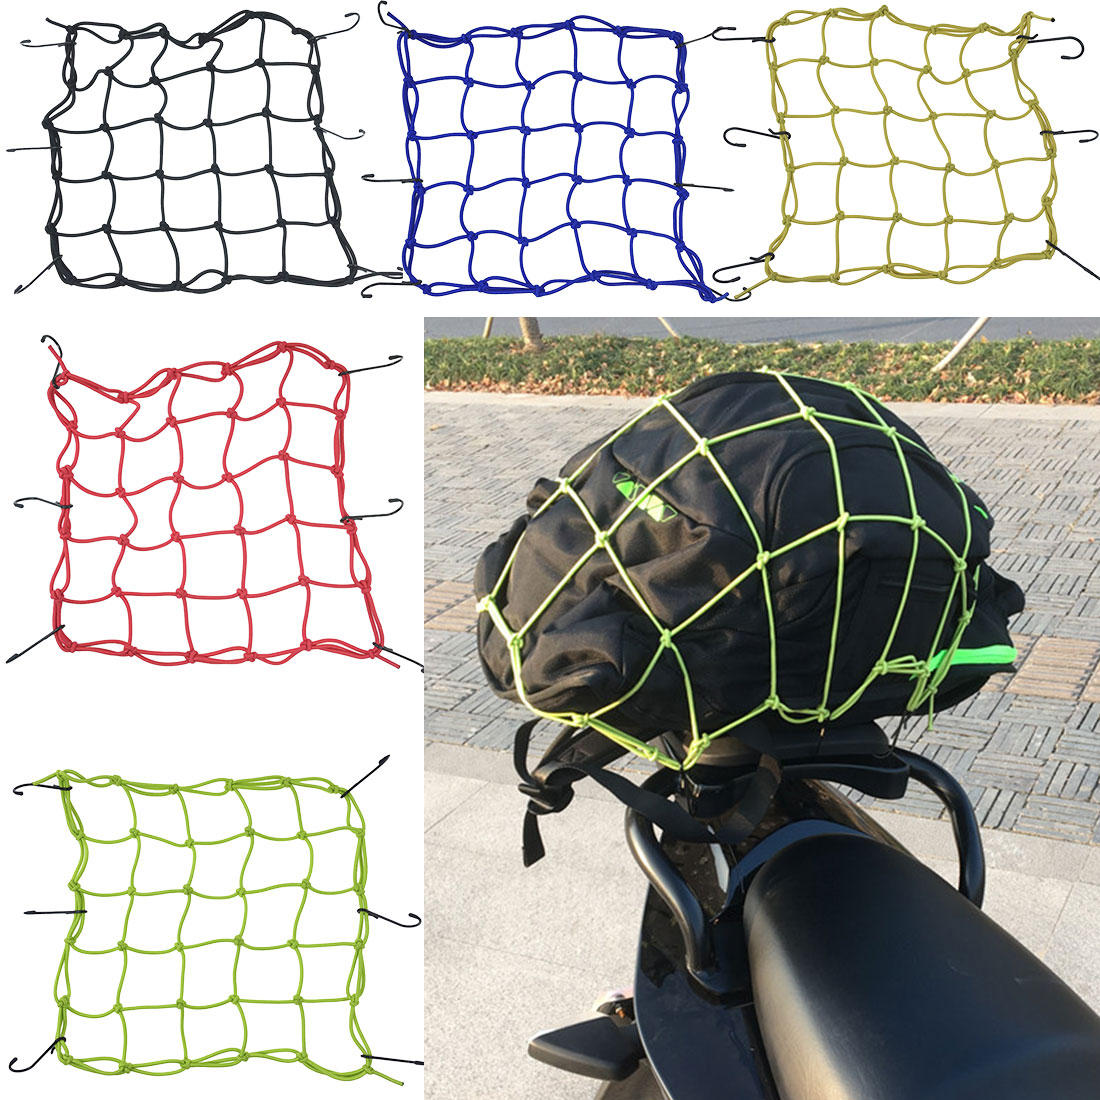 Hot Selling MTB Bicycle Cargo Net Elastic Bike Luggage Rope Fixed Helmet Sundries Professional Bicycle Accessories